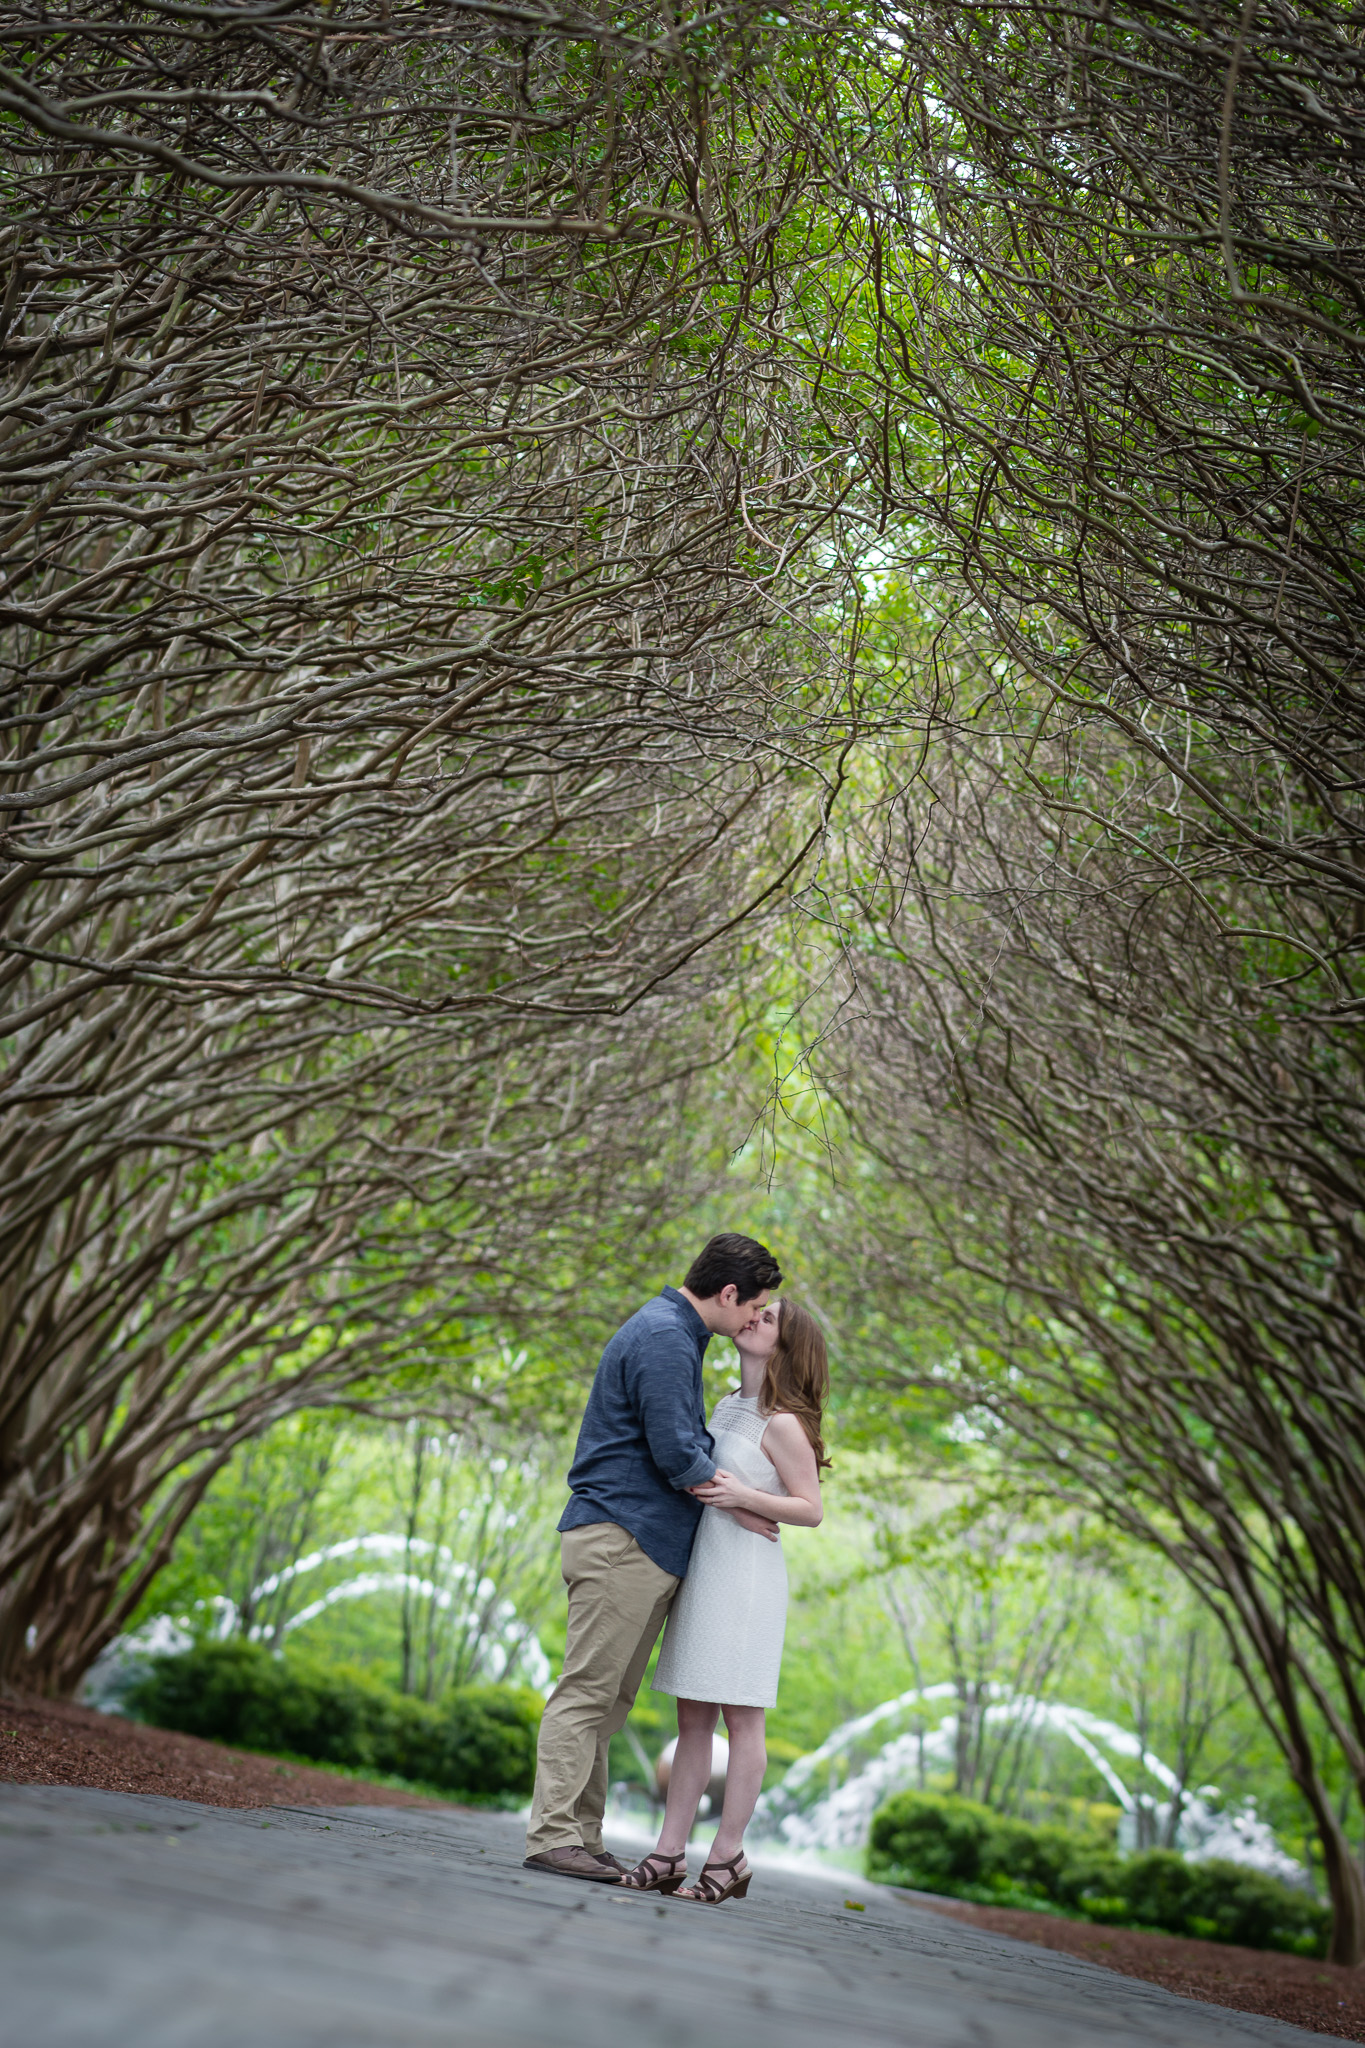 Engagement Photography at the Dallas Arboretum